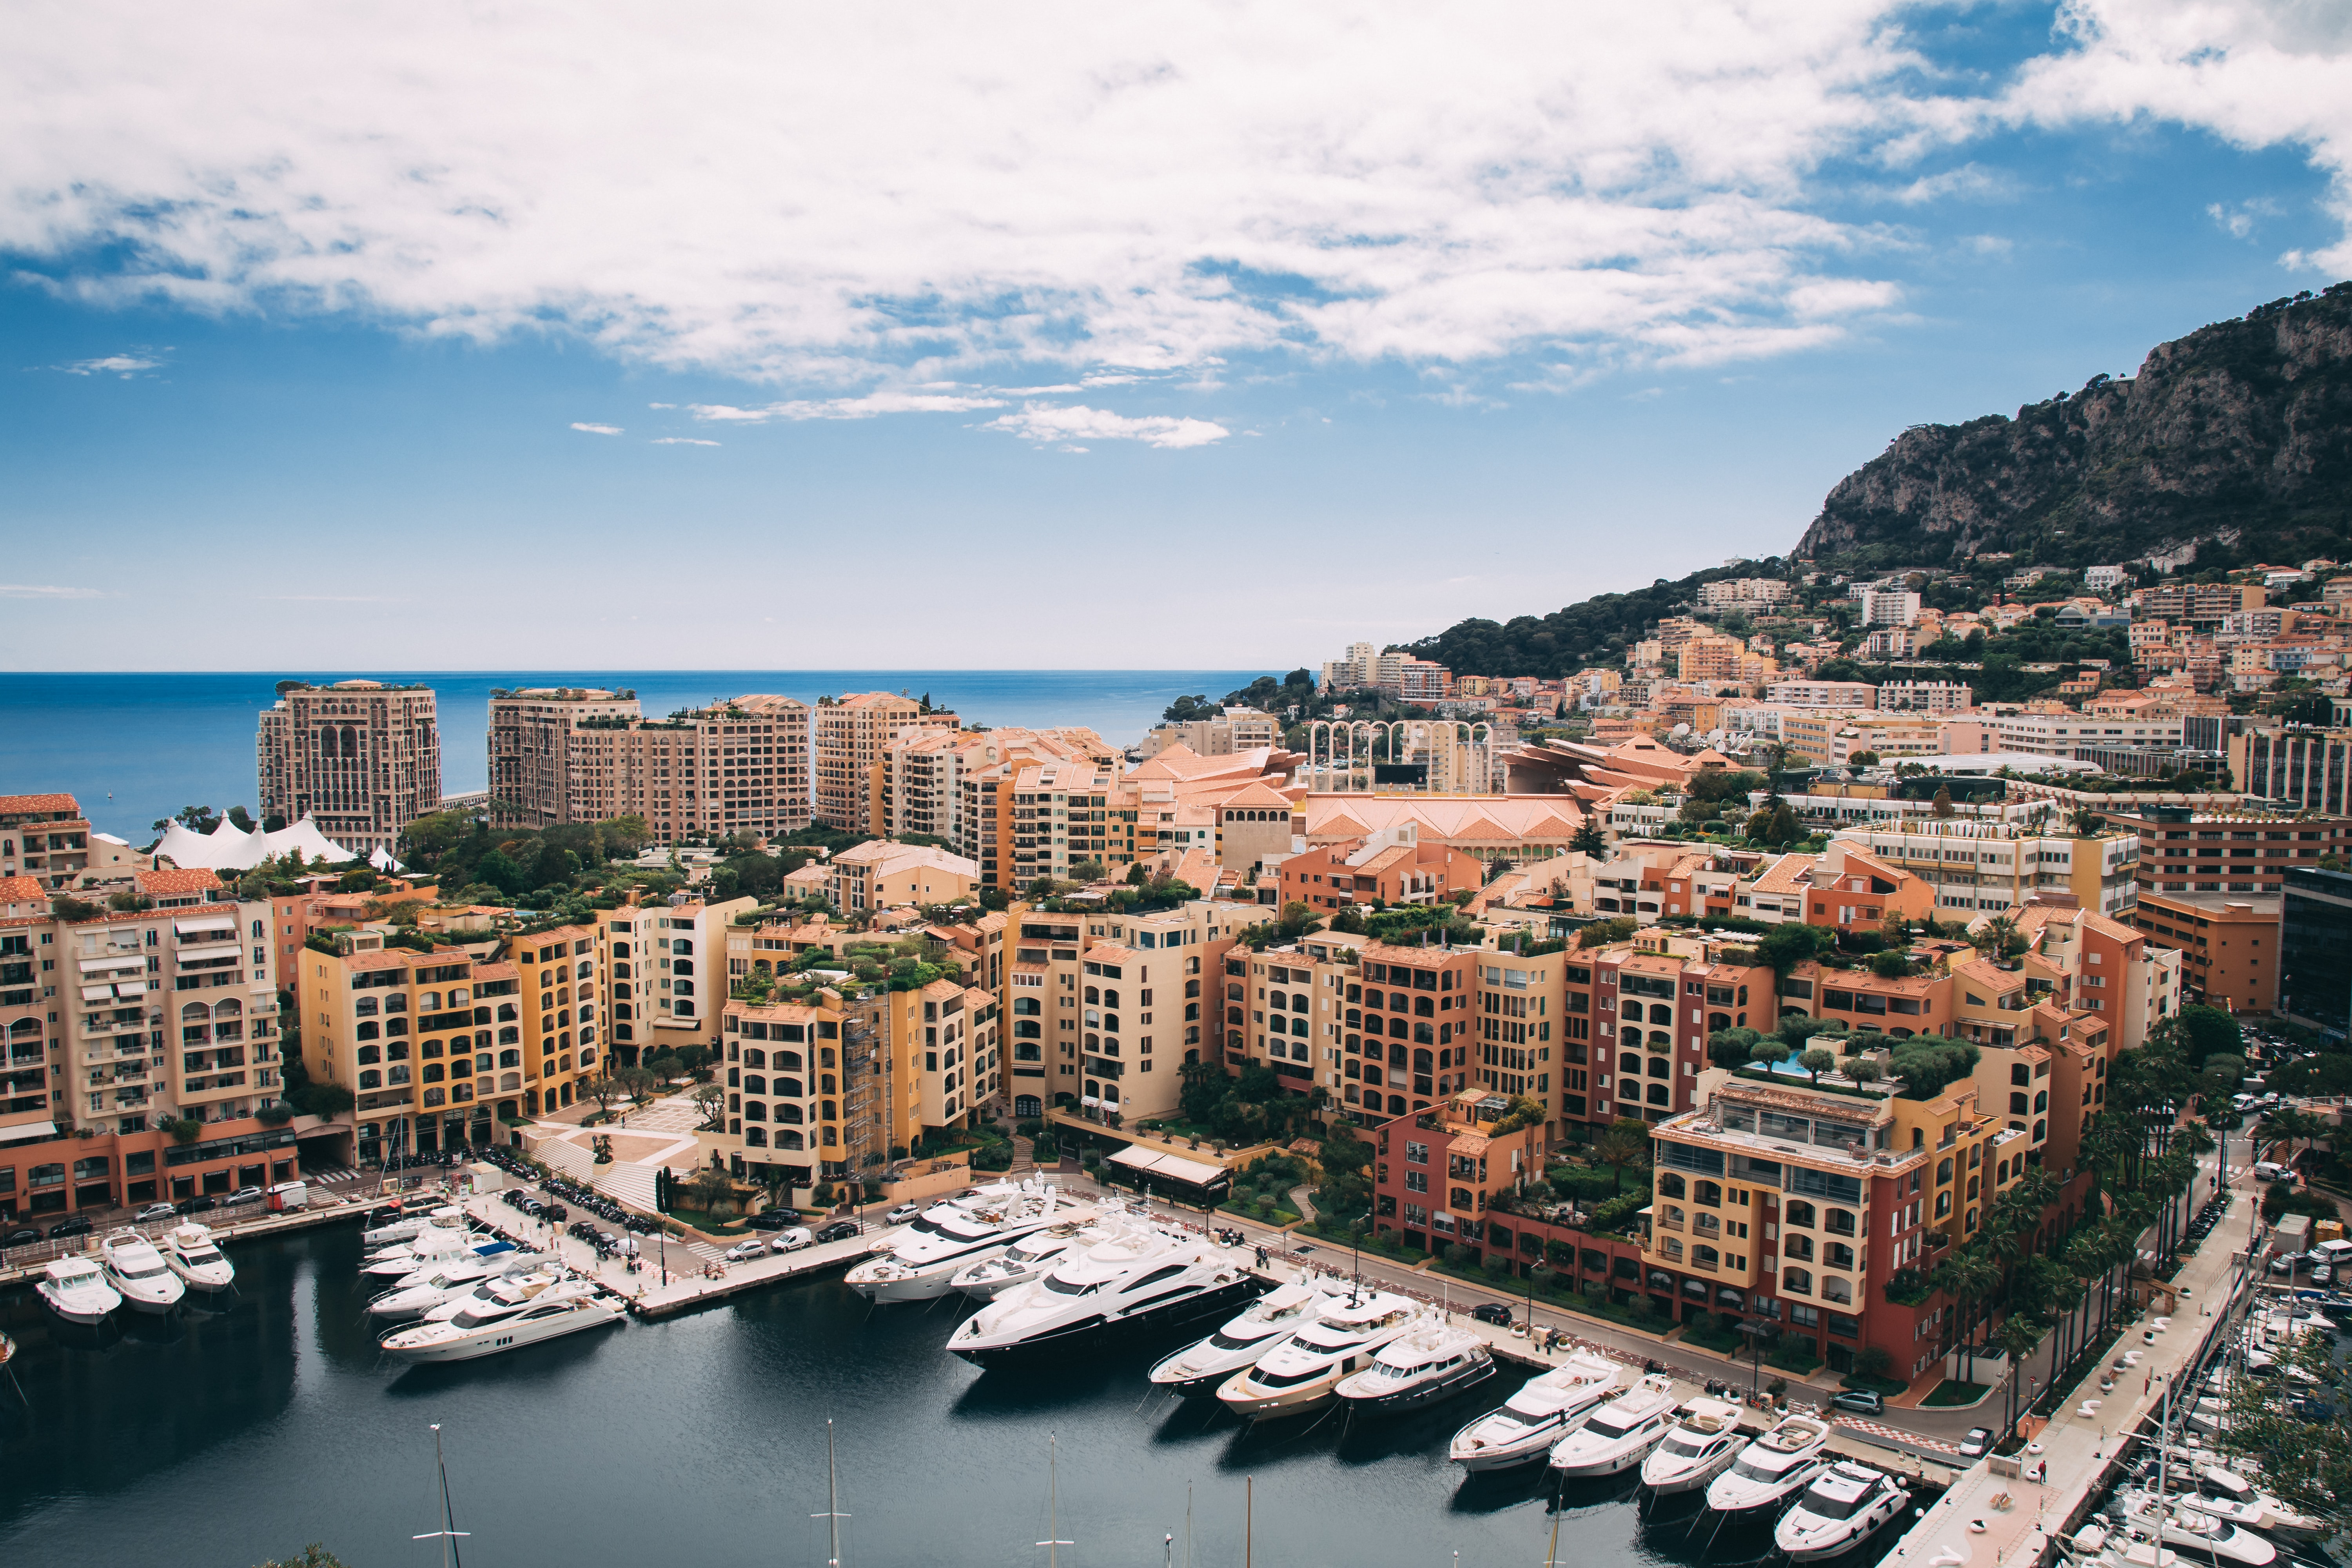 aerial photography of docks yachts near buildings